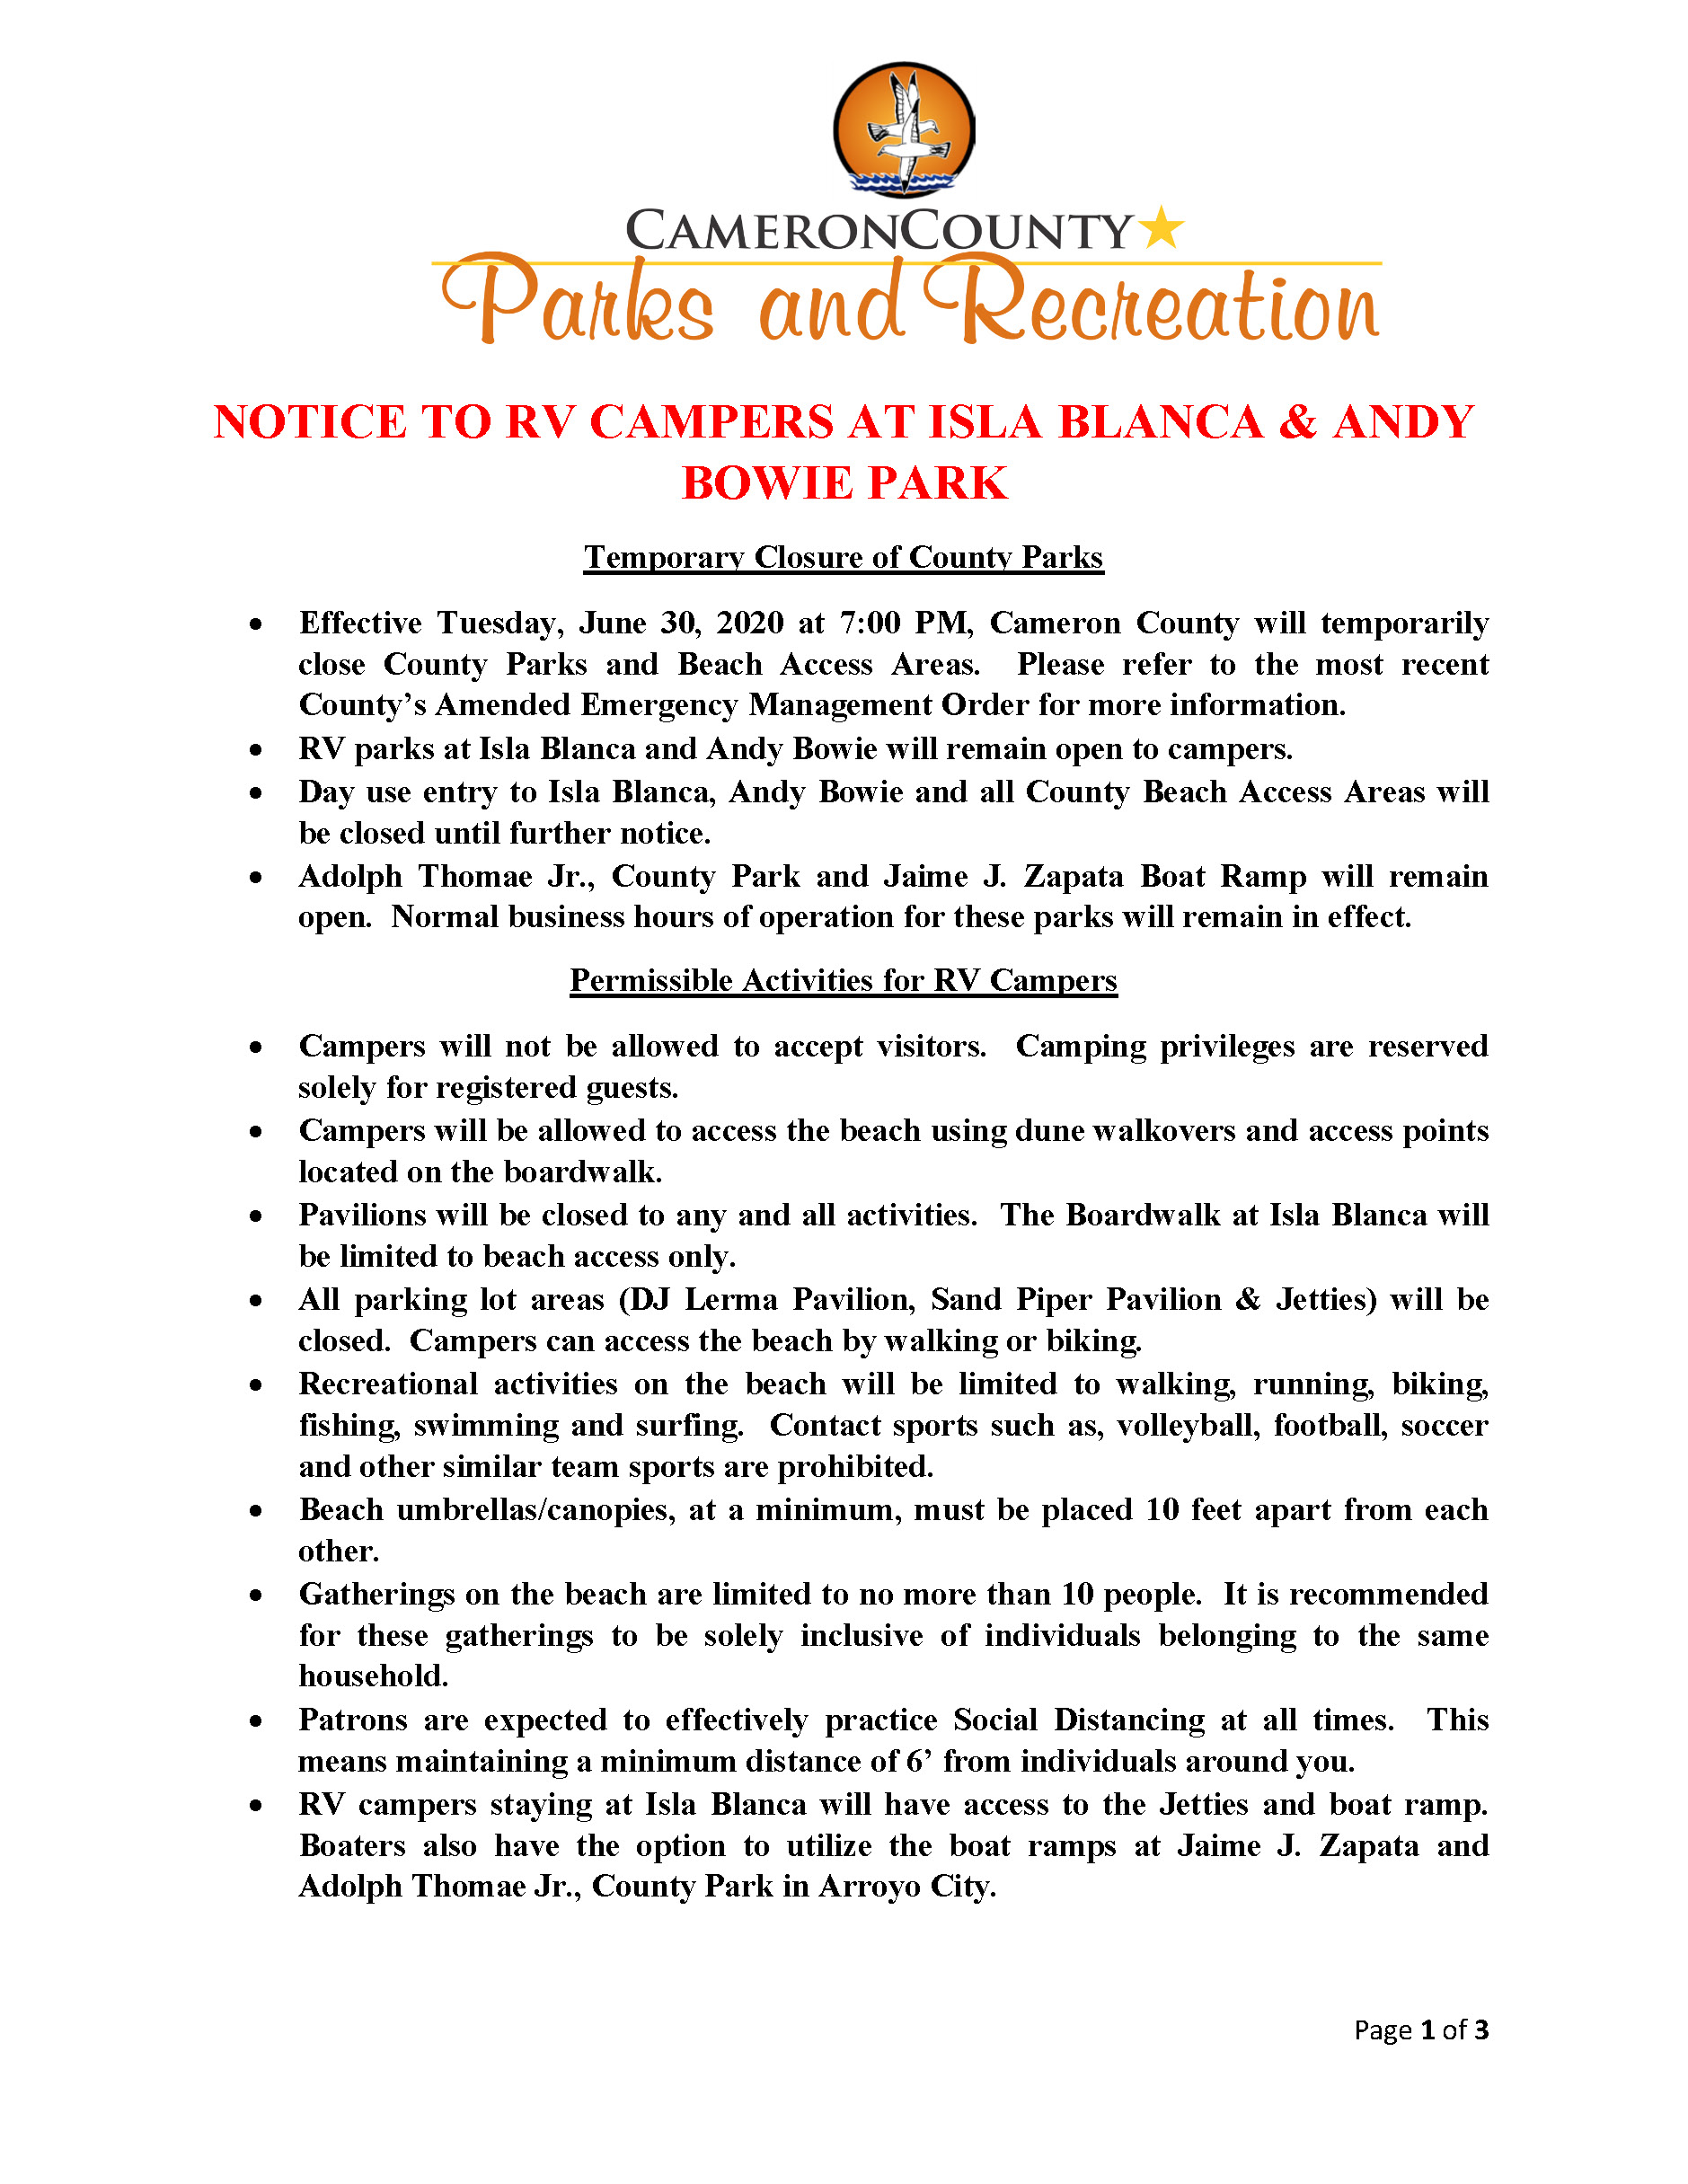 Notice To RV Guest IBP Andy Bowie Park Draft 6 30 20 Page 1